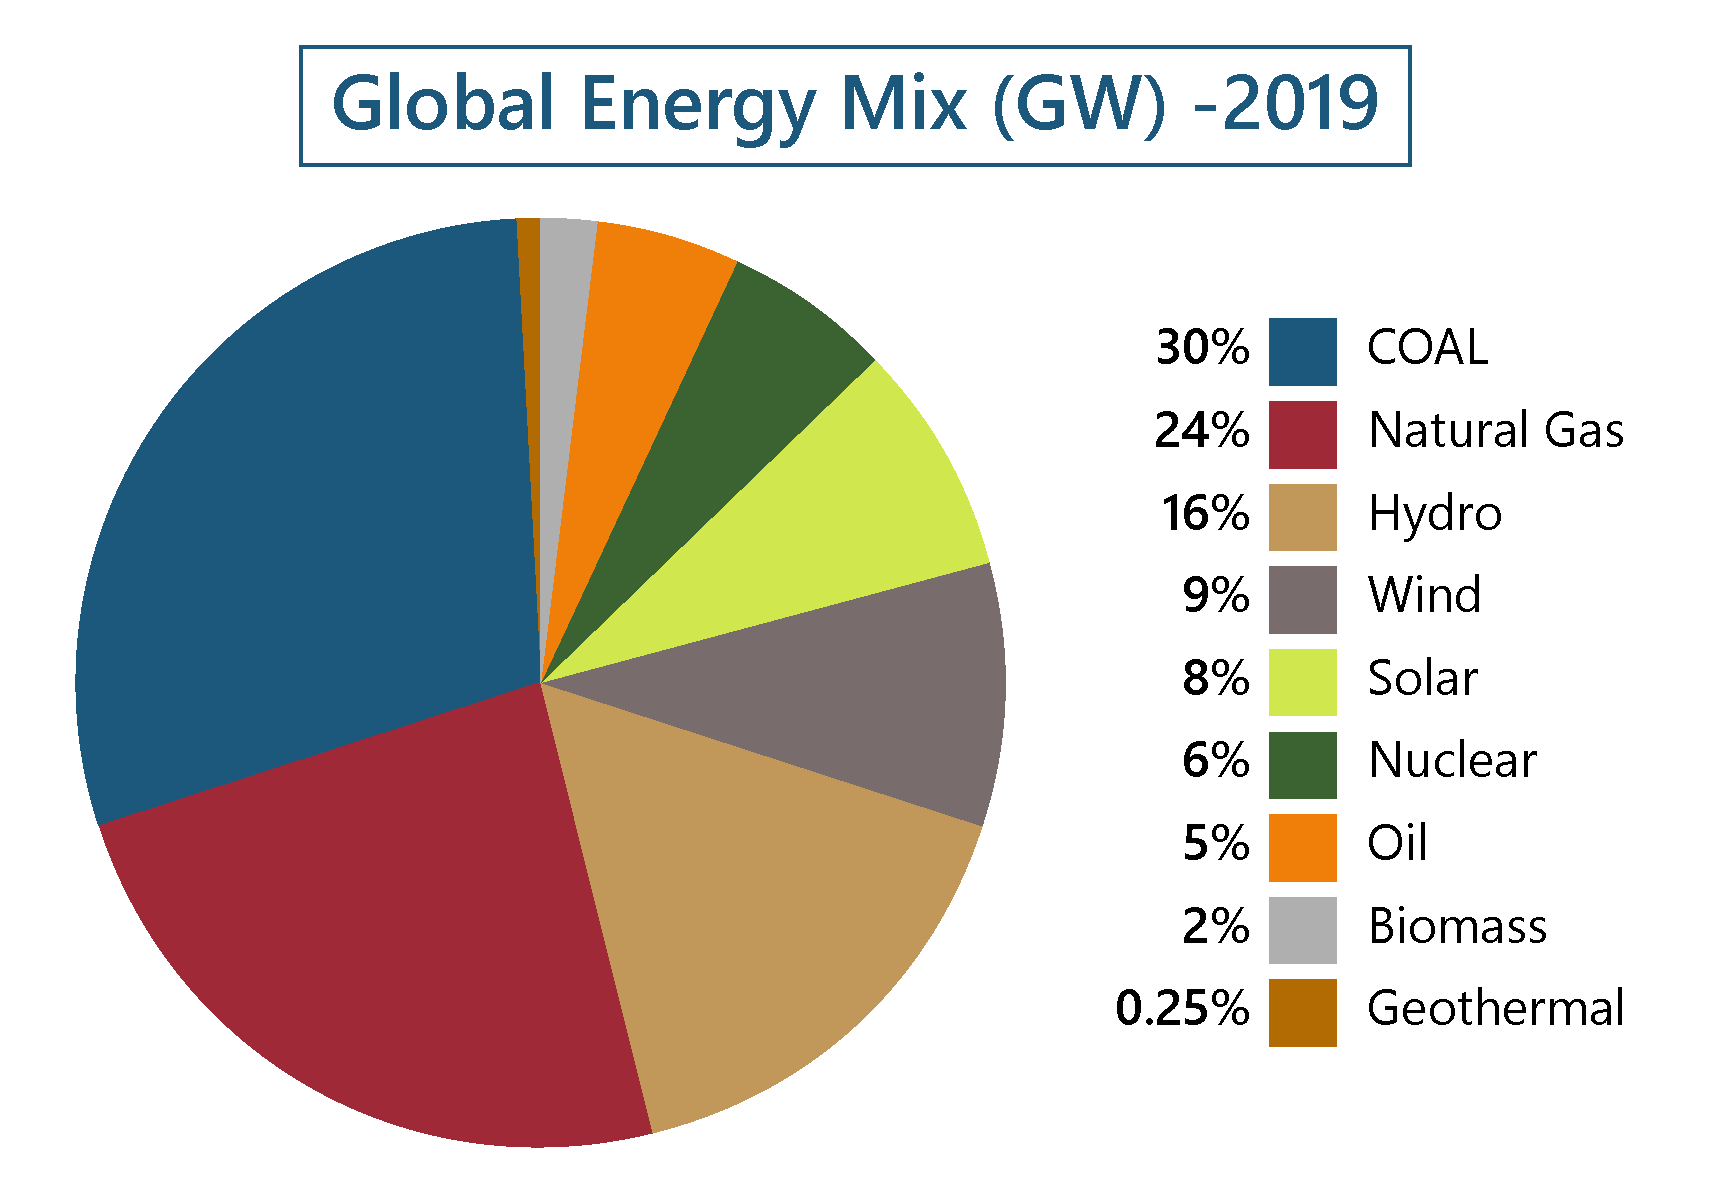 Global energy mix 2019/COAL-Natural Gas-Hydro-Wind-Solar-Nuclear-Oil-Biomass-Geothermal